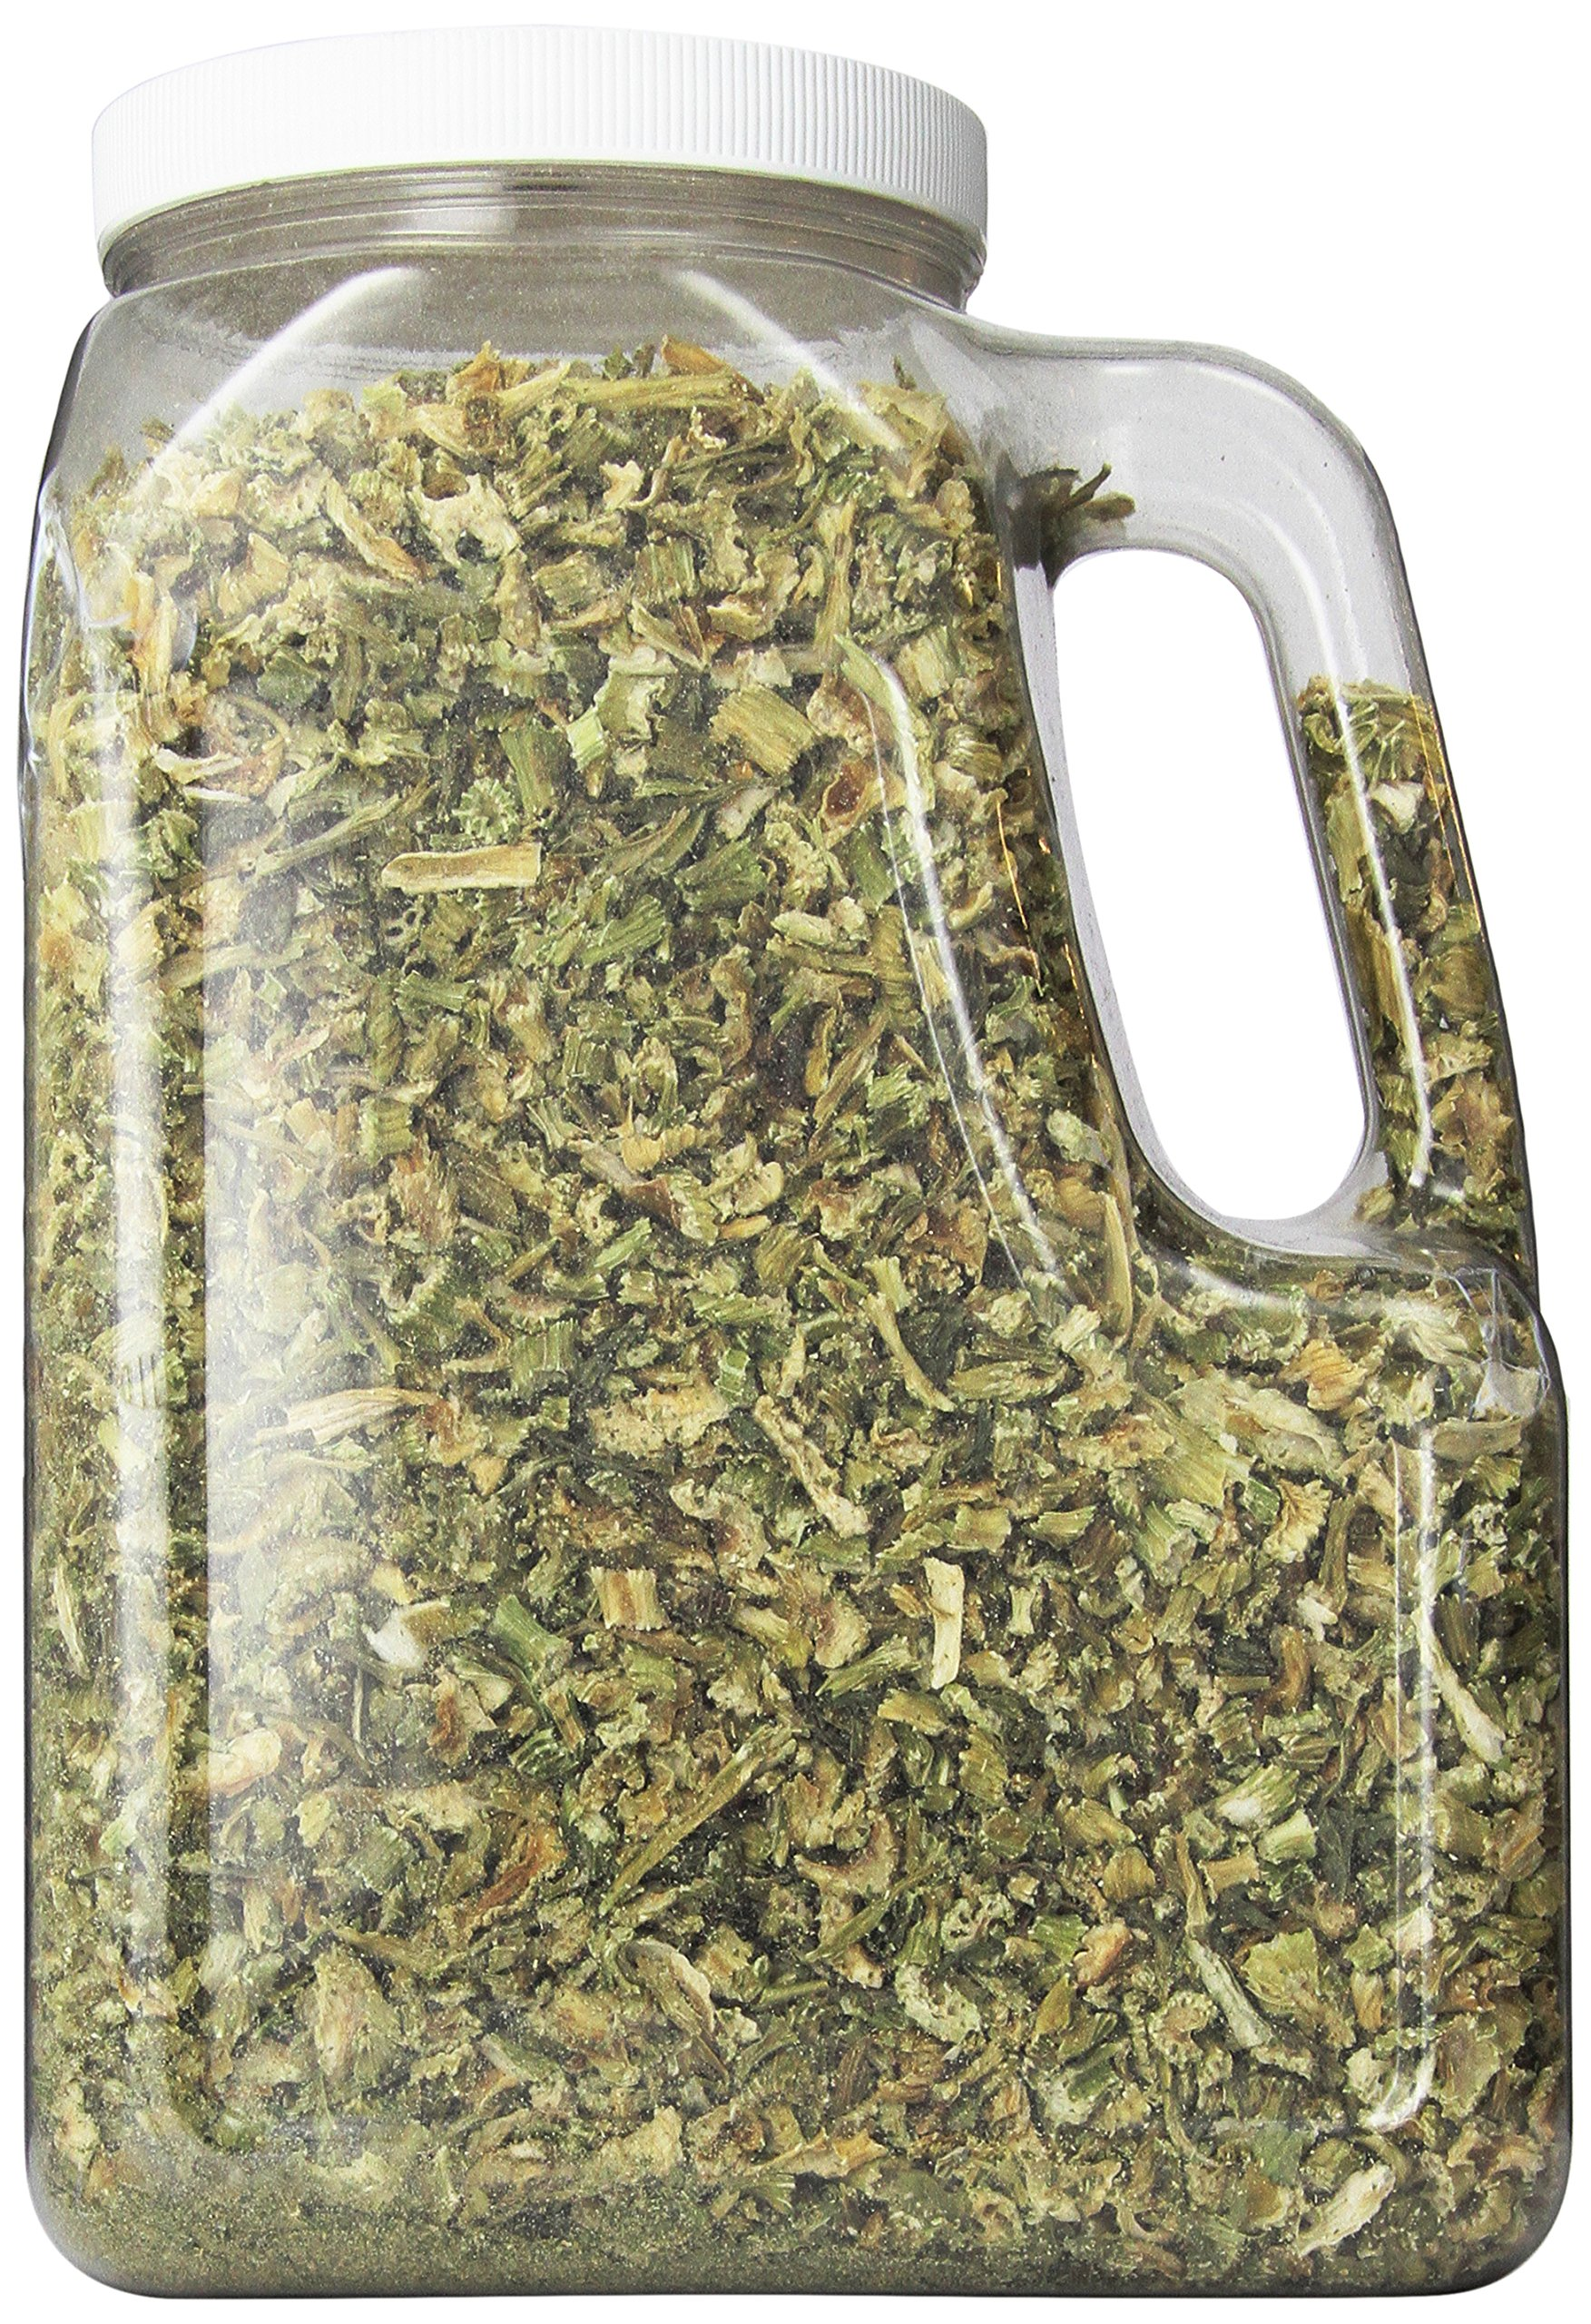 Marshalls Creek Spices Celery Flakes, XX-Large, 2 Pound by Marshall's Creek Spices (Image #3)